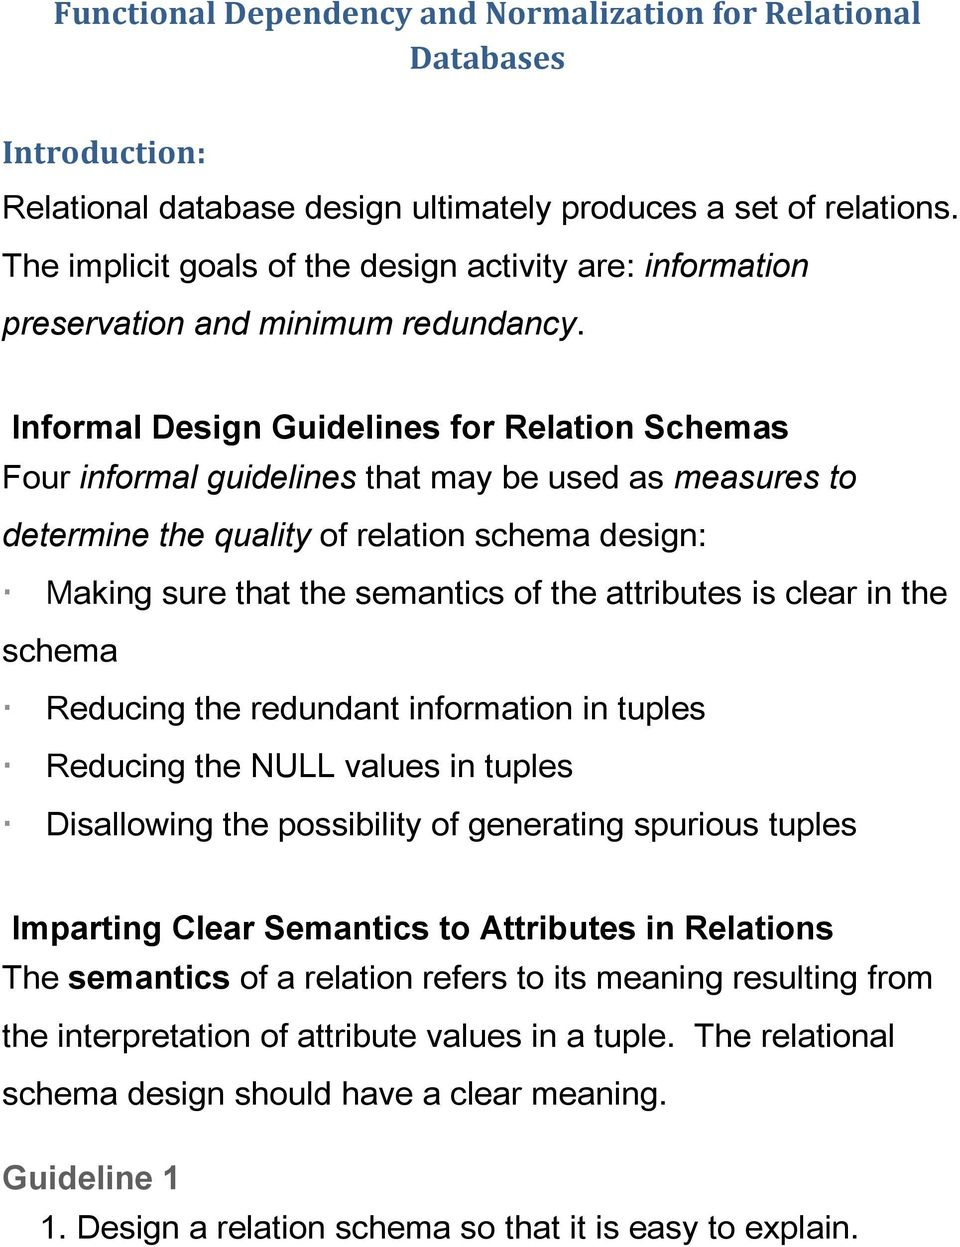 Informal Design Guidelines for Relation Schemas Four informal guidelines that may be used as measures to determine the quality of relation schema design: Making sure that the semantics of the